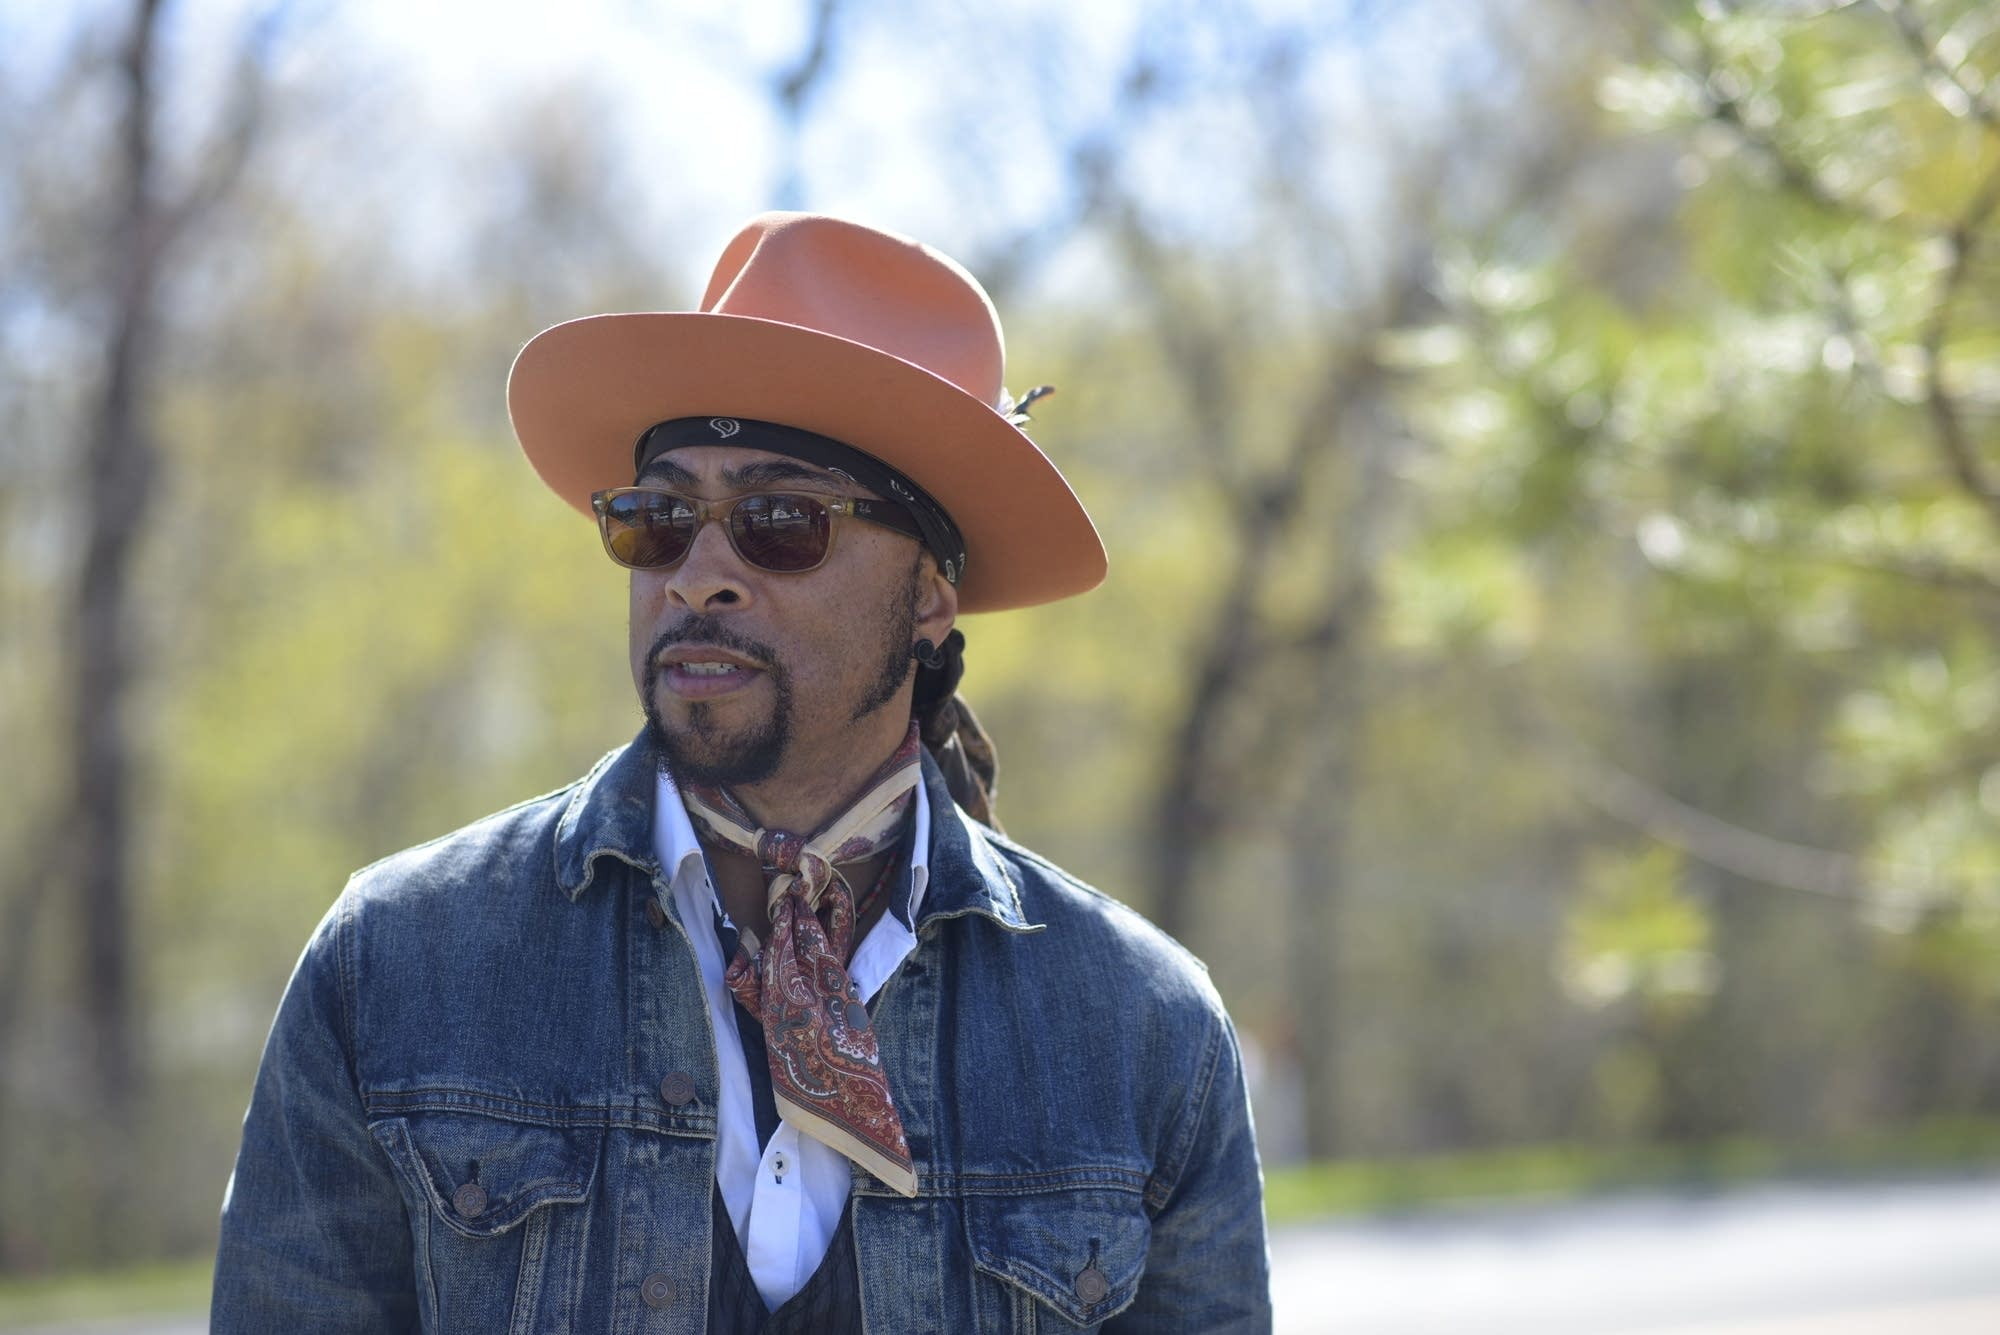 Andre Cymone at Paisley Park on April 21, 2017